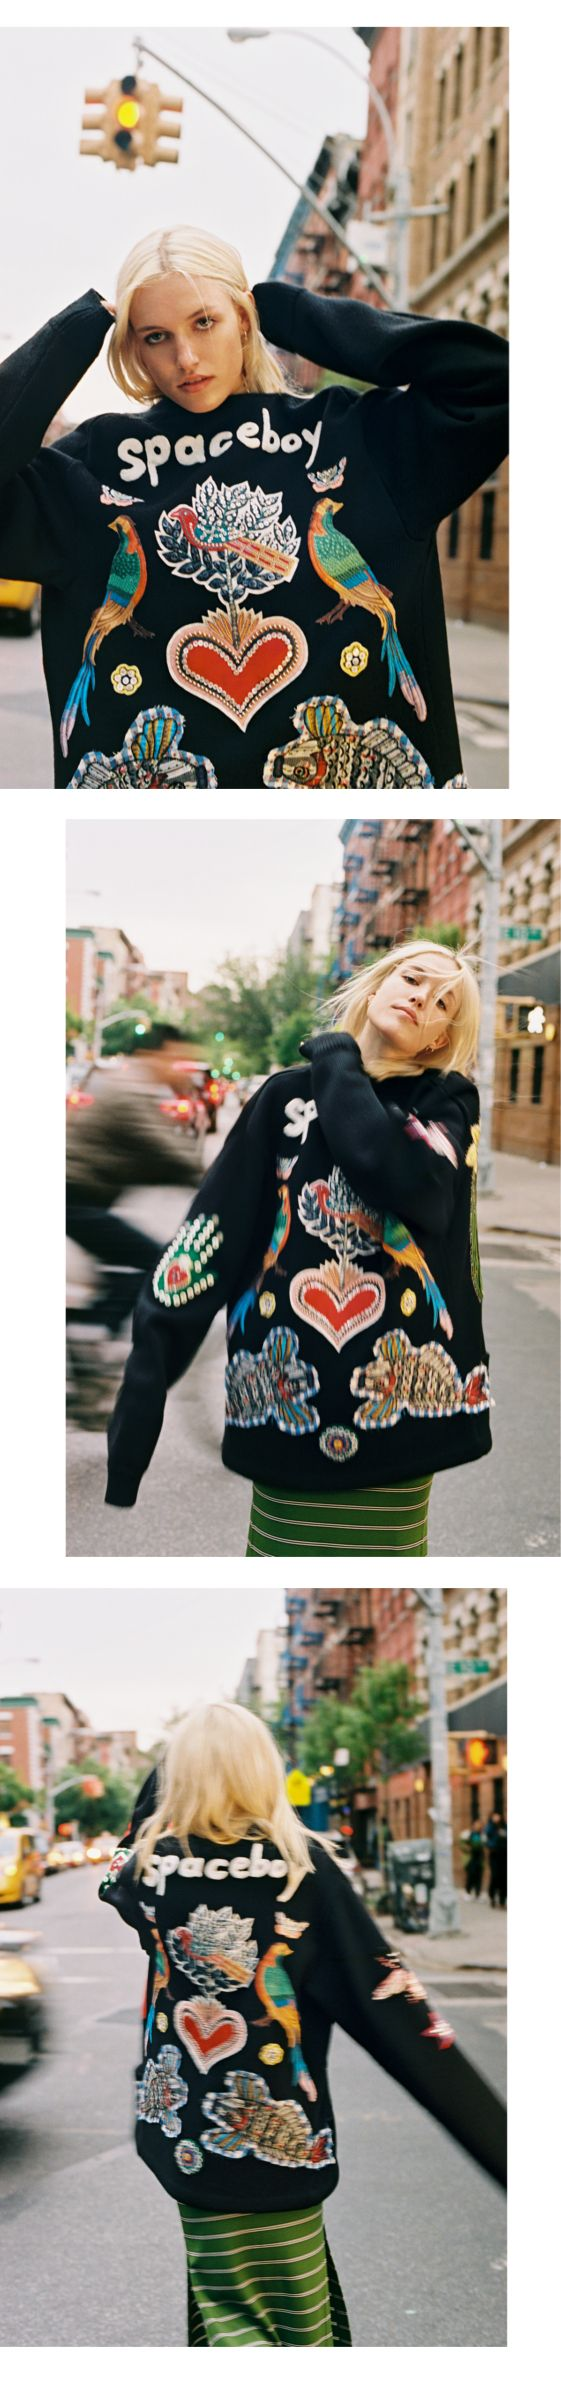 Carlotta Kohl, 23, a model, photographer, artist and sculptor, wears a Gucci wool cardigan embellished with different appliqués. Produced by Vogue for Gucci.